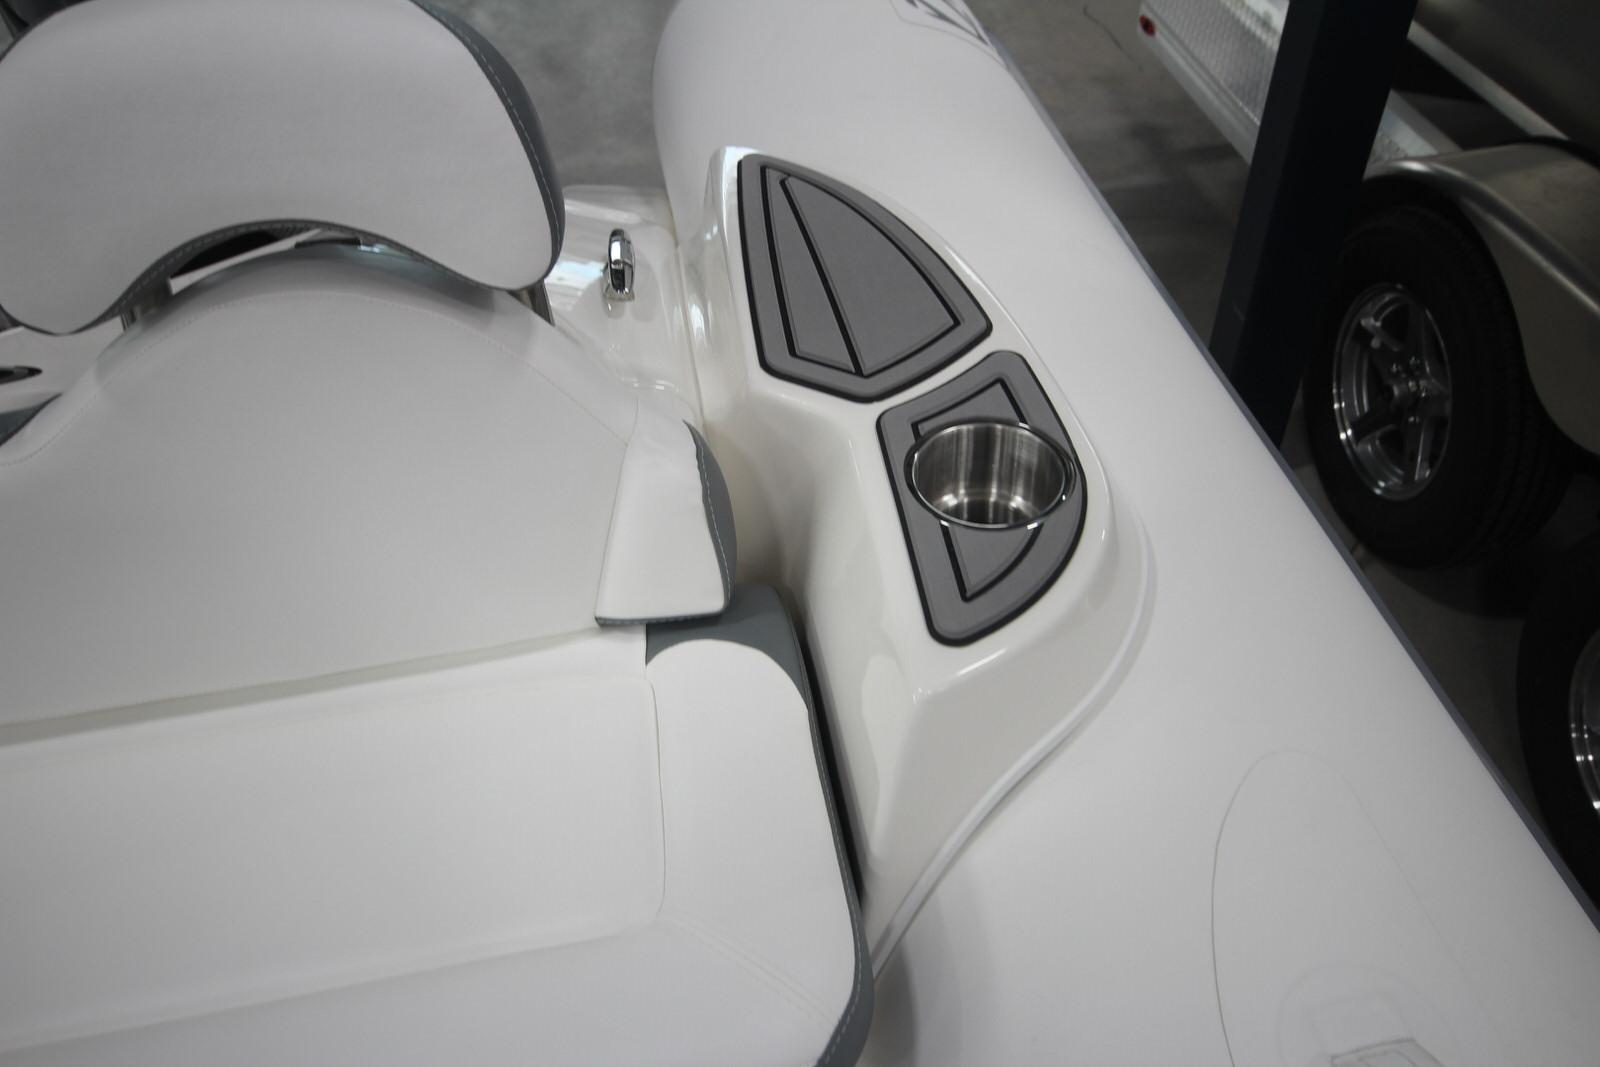 2022 Zodiac Yachtline 490 Deluxe NEO GL Edition 90hp On Order, Image 20